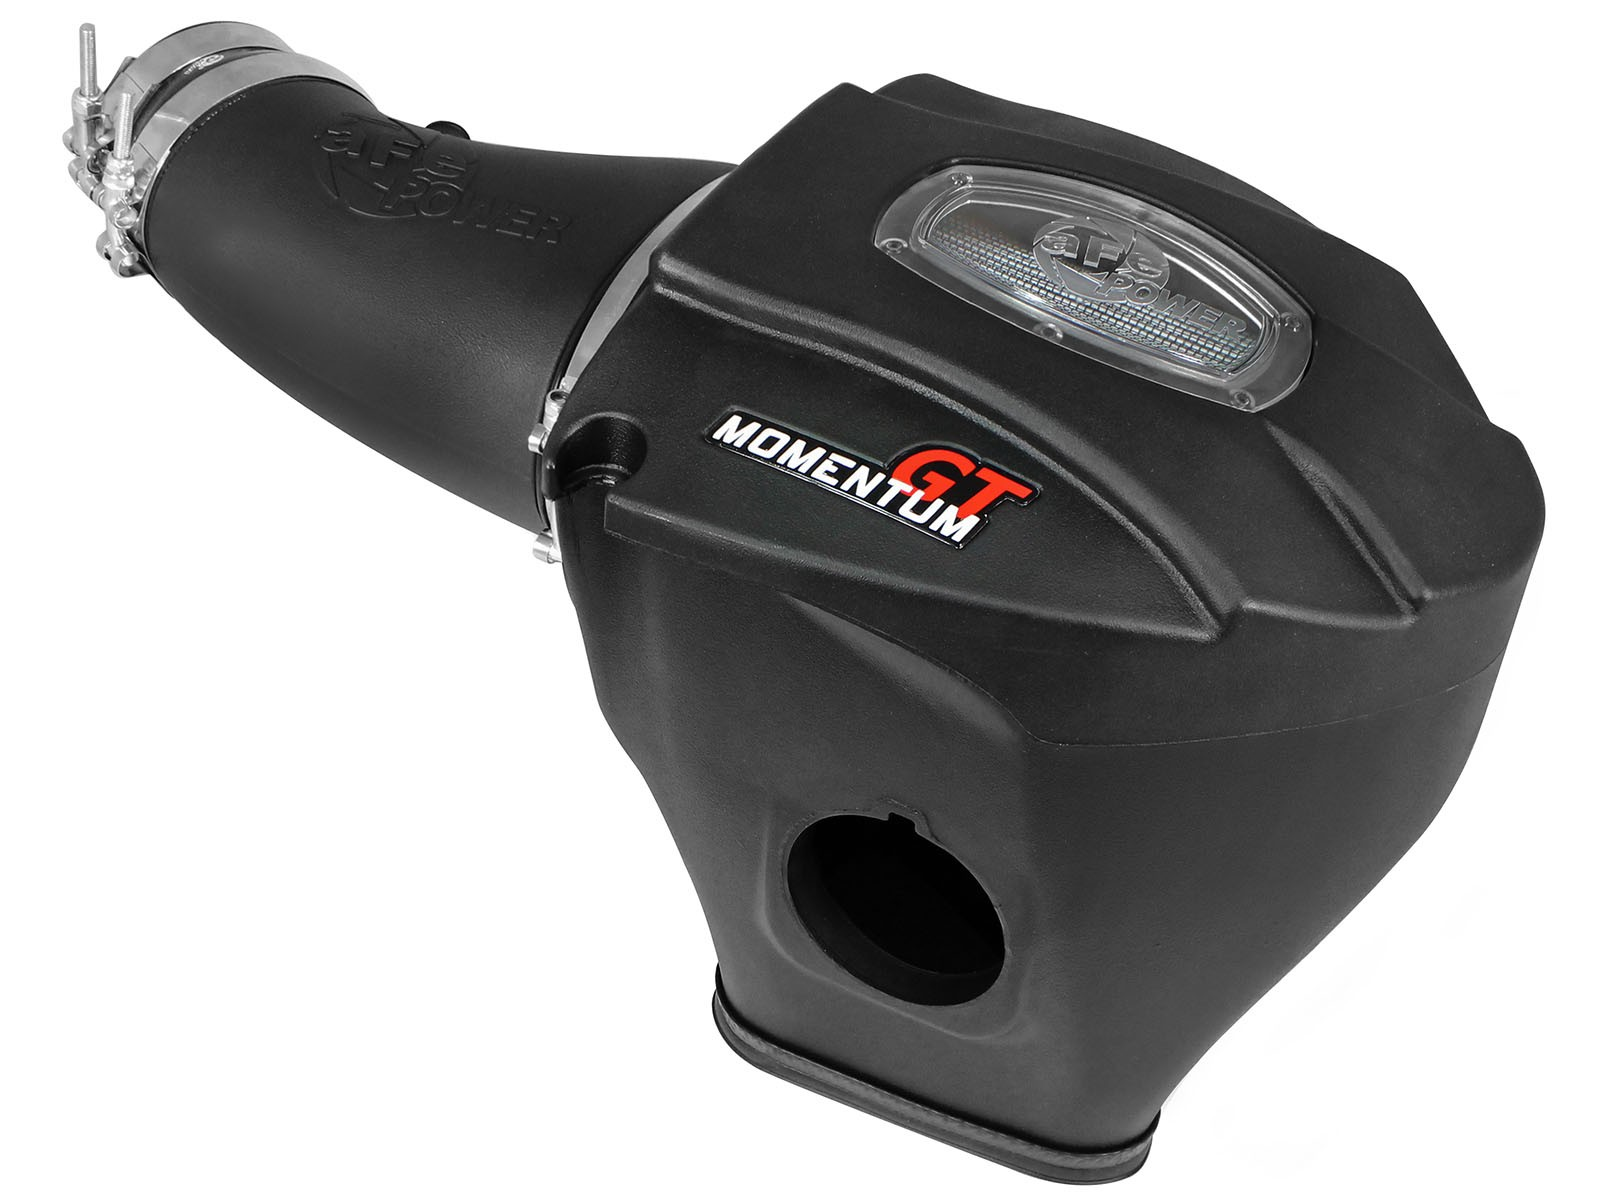 aFe POWER 51-72203 Momentum GT Pro DRY S Cold Air Intake System